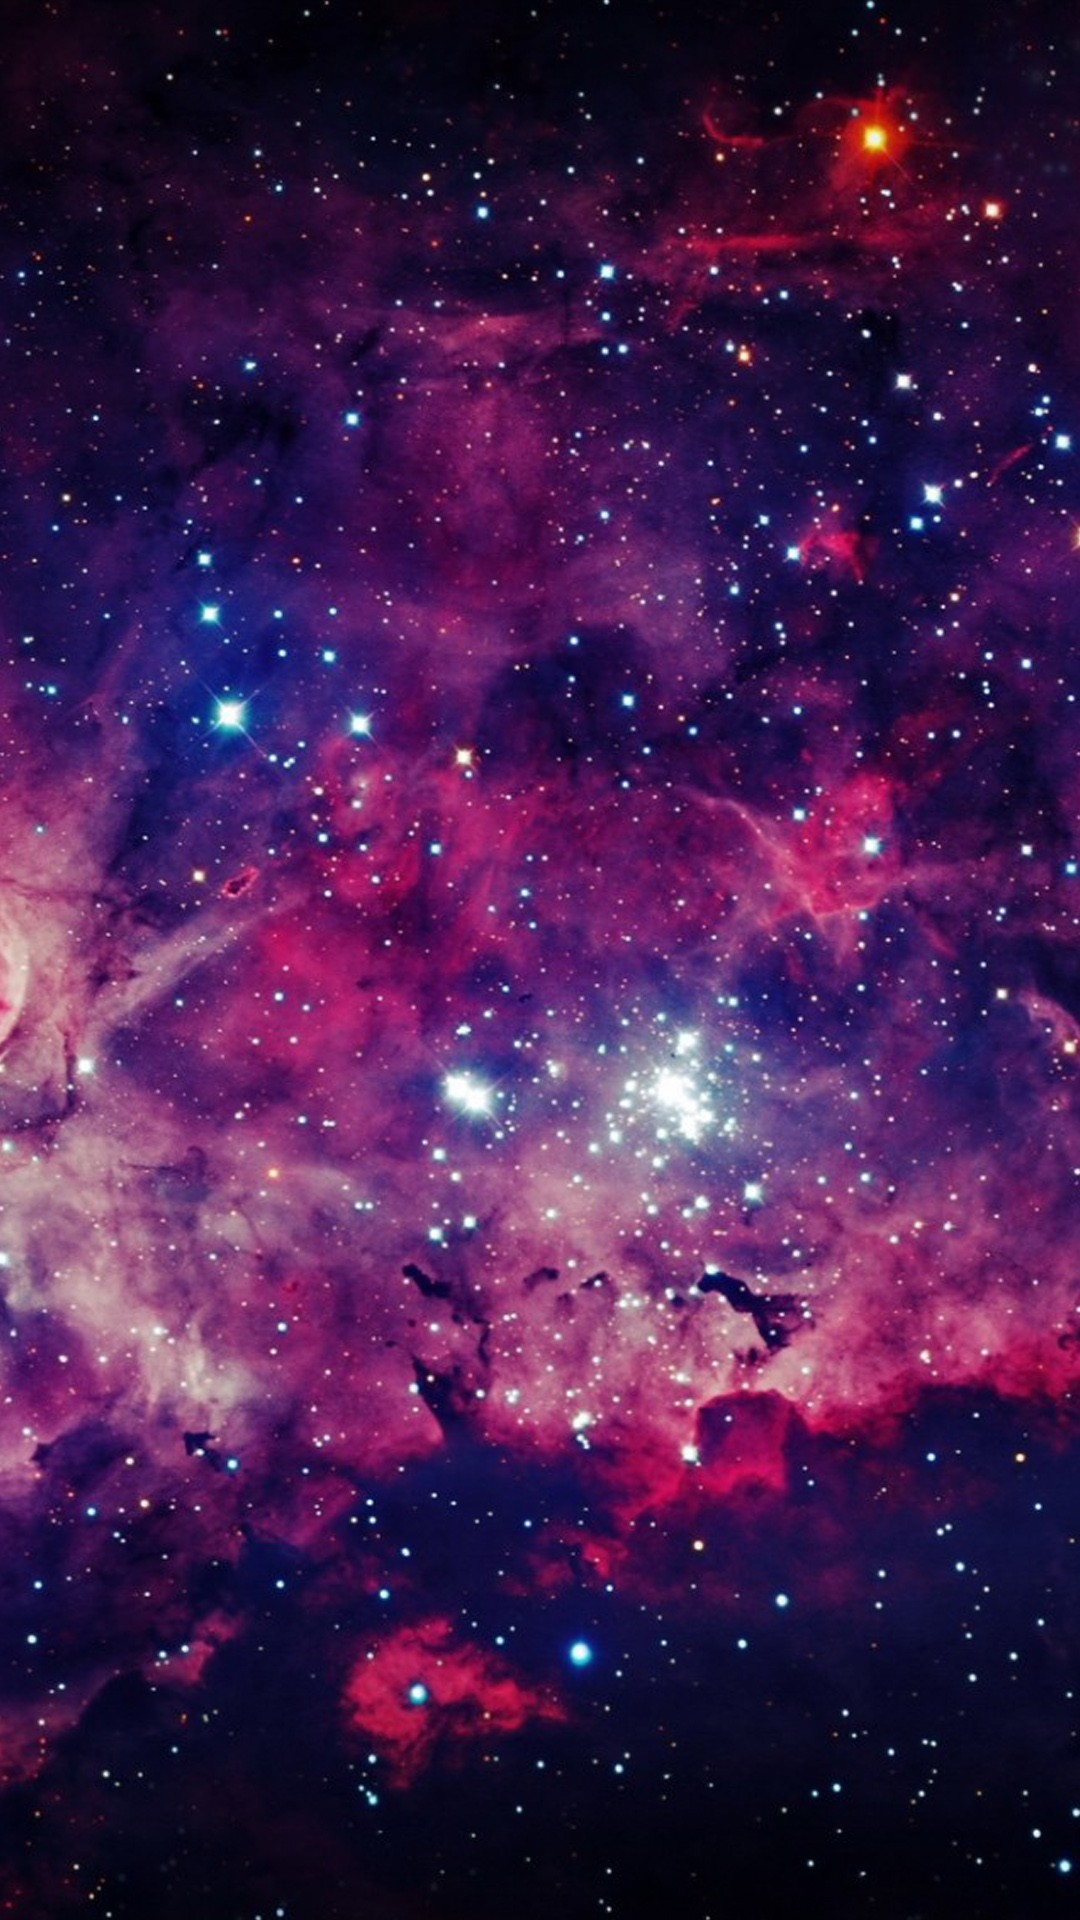 1080x1920 - Galaxy Wallpapers 7